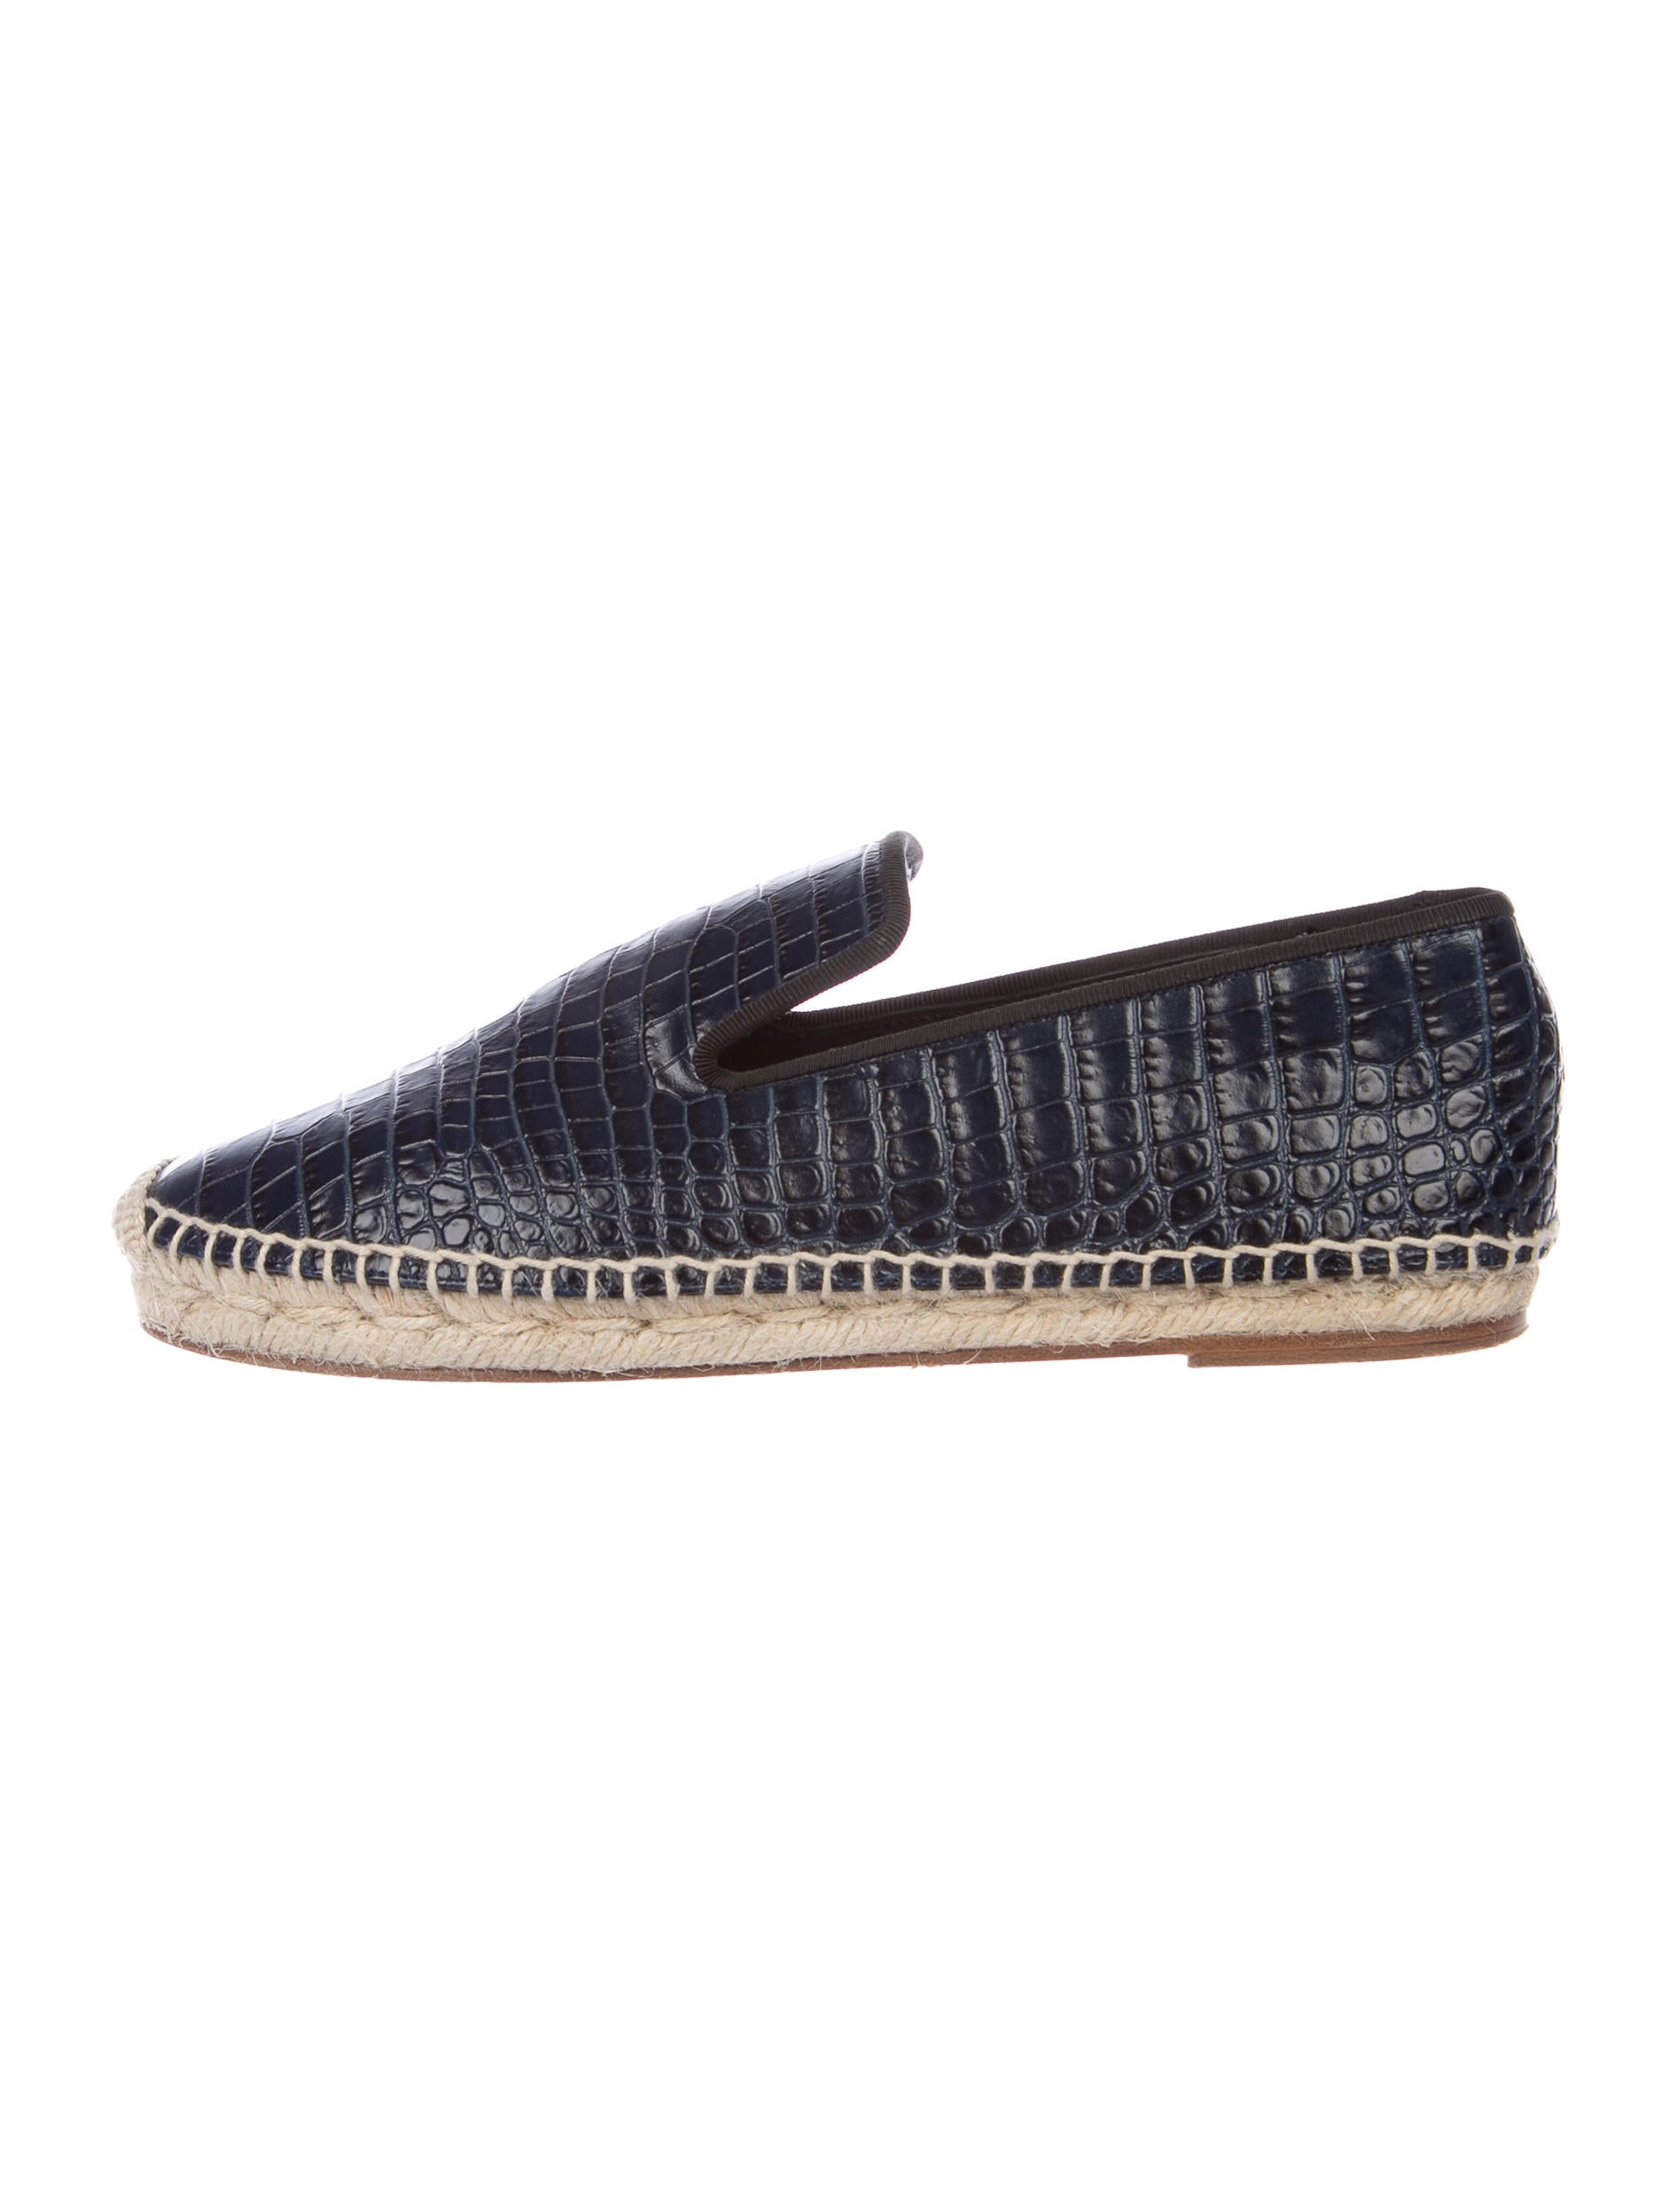 cheapest price online Céline Leather Espadrille Loafers cost discount big discount clearance websites fast delivery sale online r1Tcr